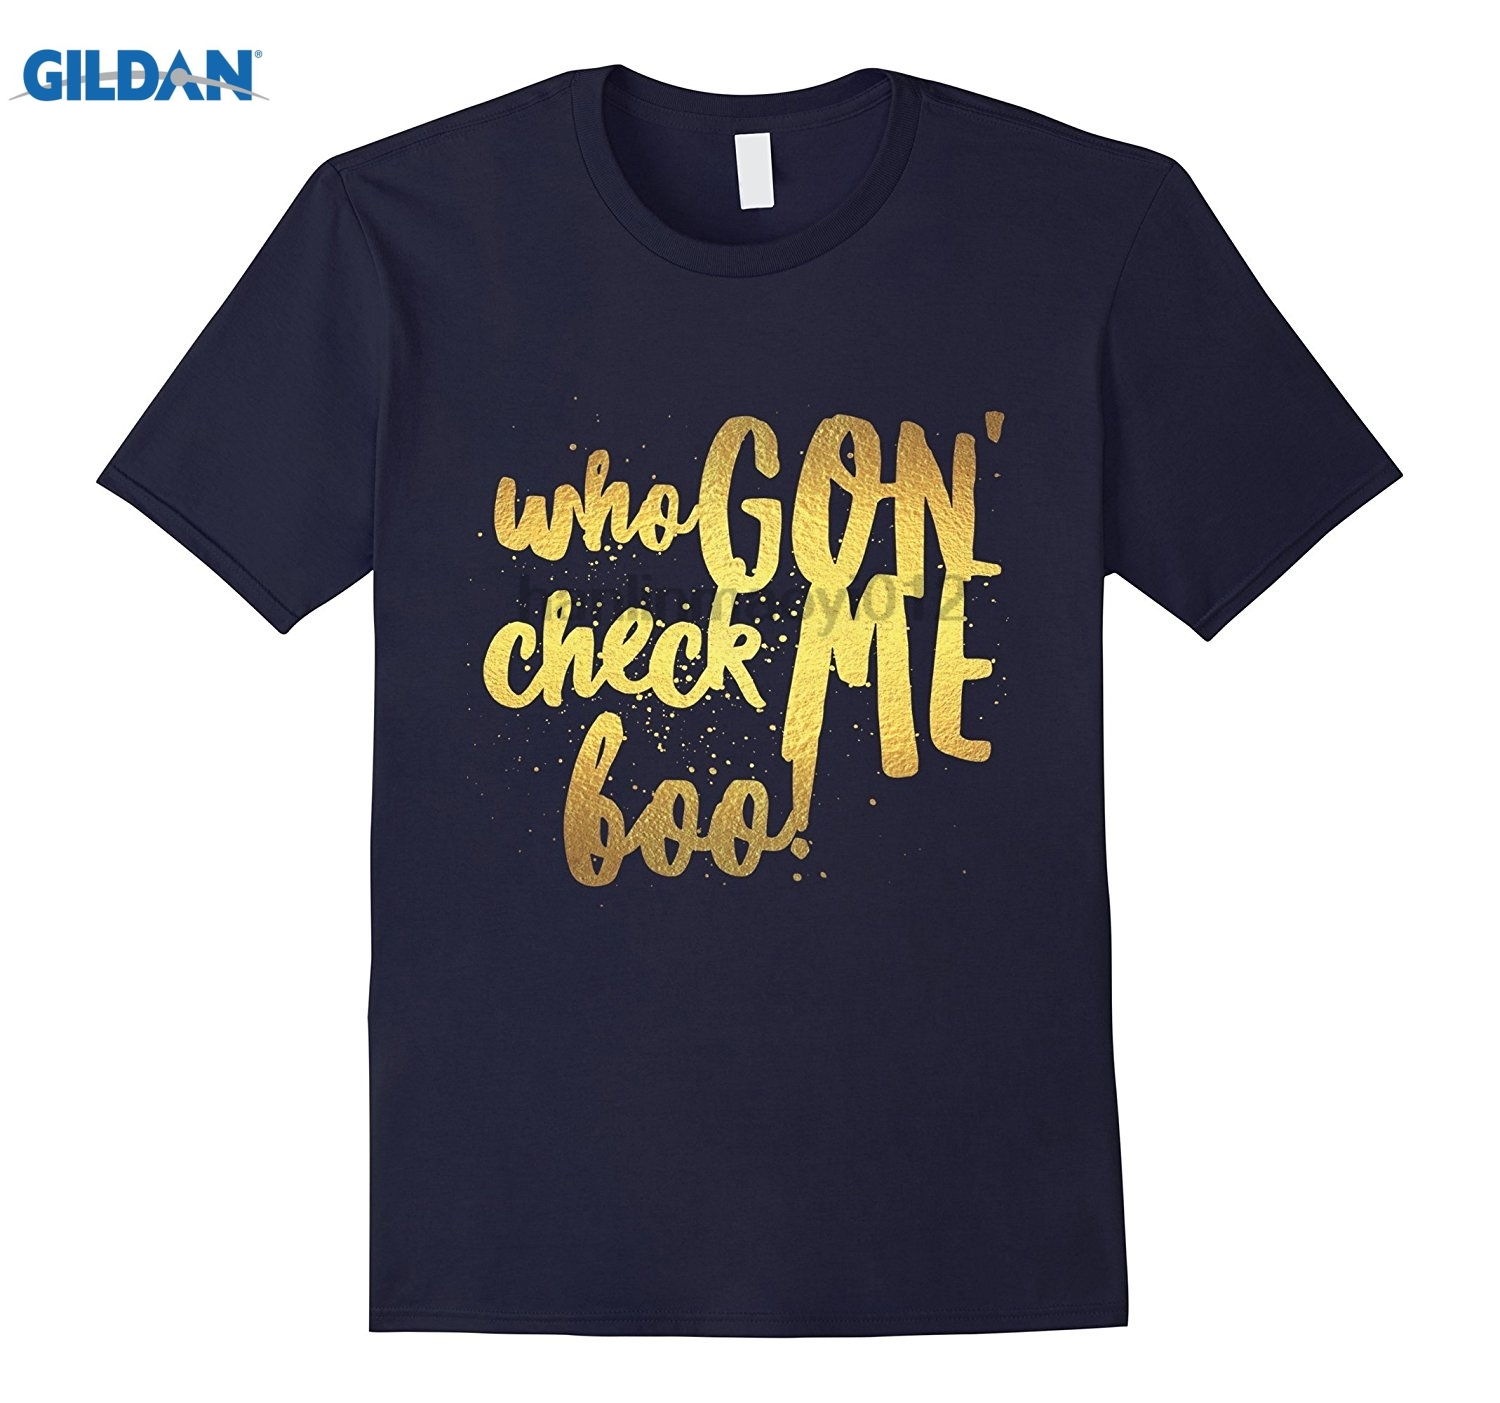 GILDAN Trending bling Who gon get me boo in gold t-shirt Hot Womens T-shirt